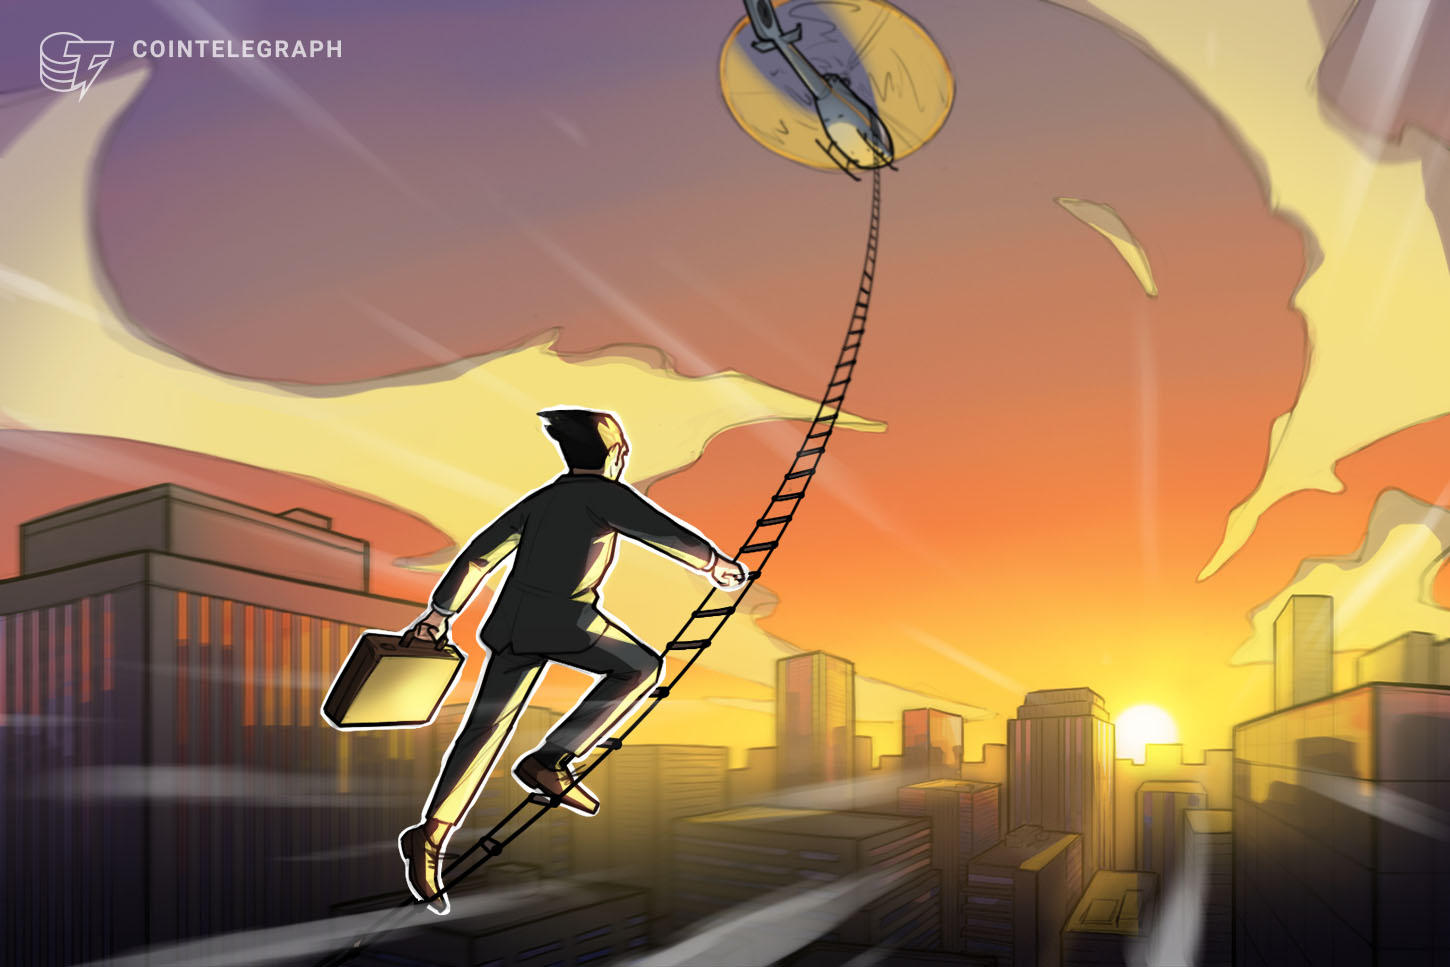 Tehran Stock Exchange CEO resigns following discovery of Bitcoin miners in basement